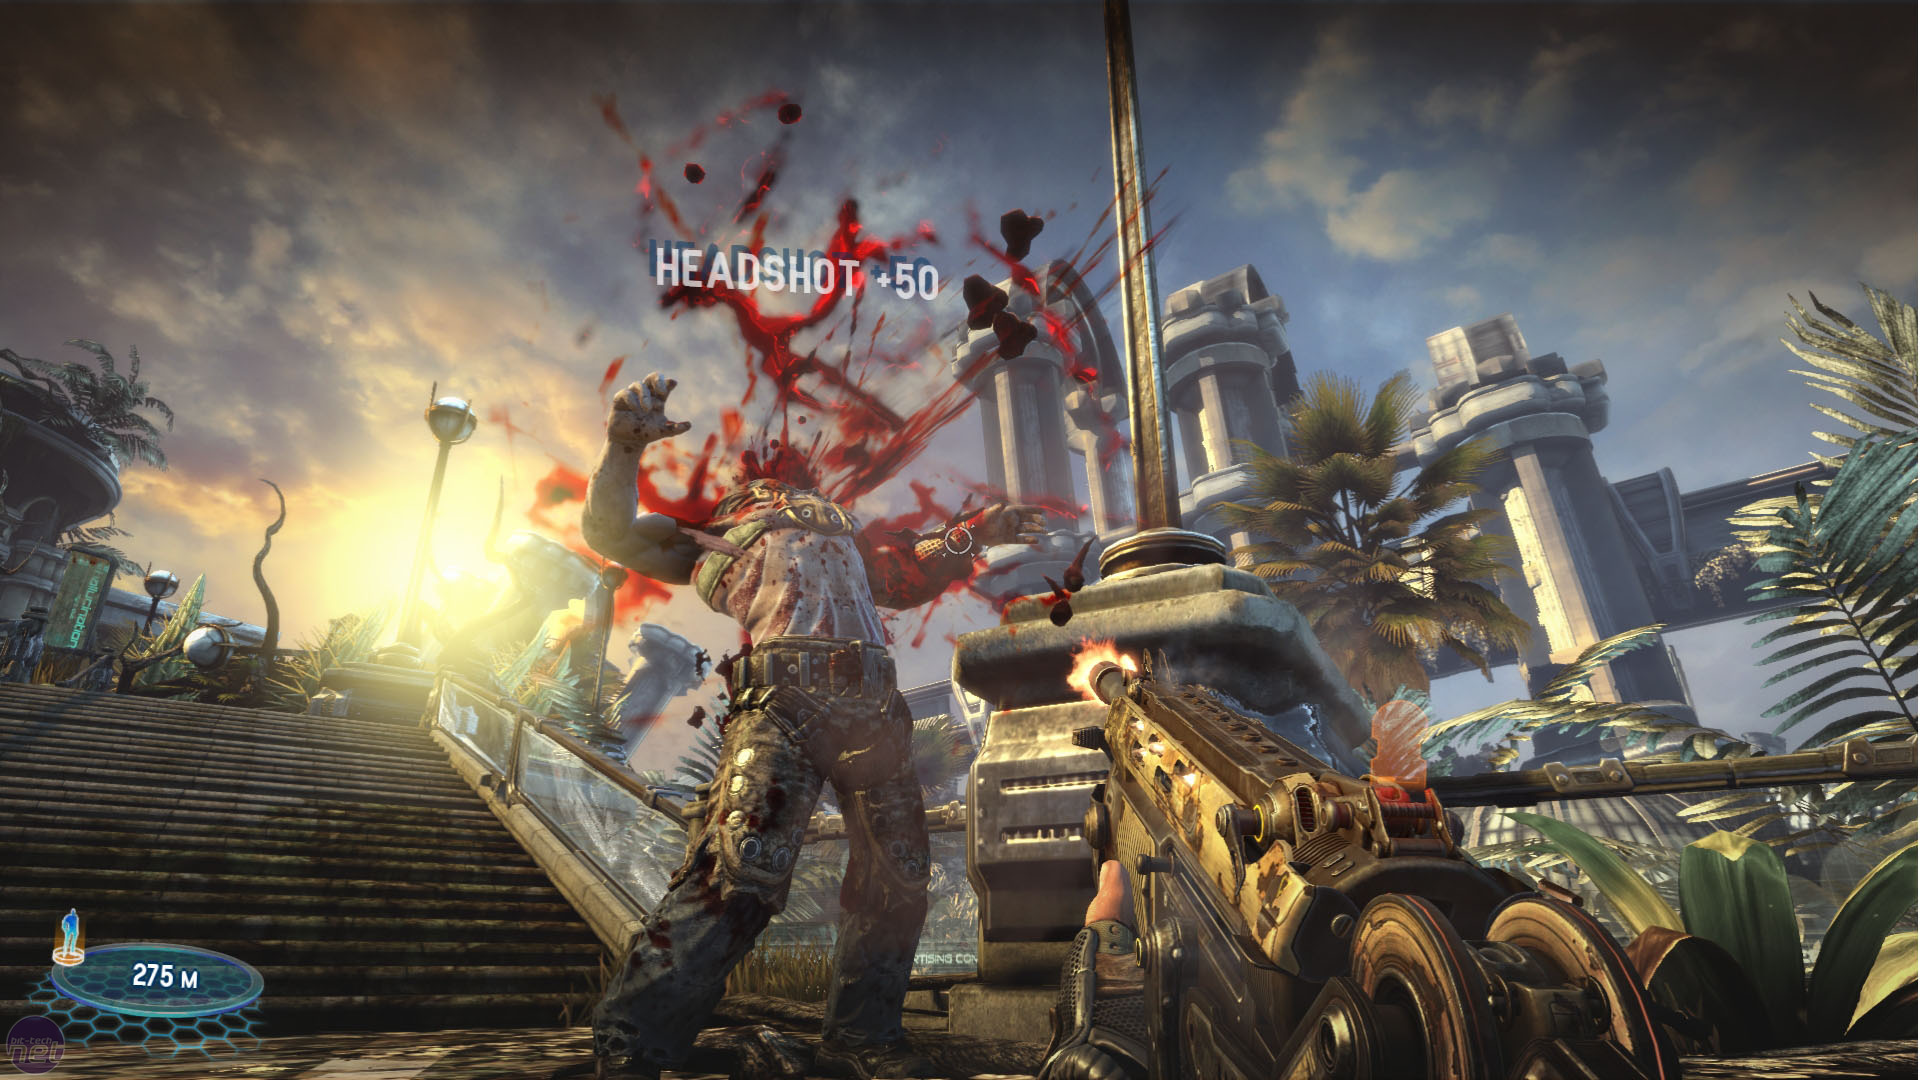 BULLETSTORM Free Iso Download Pc Version